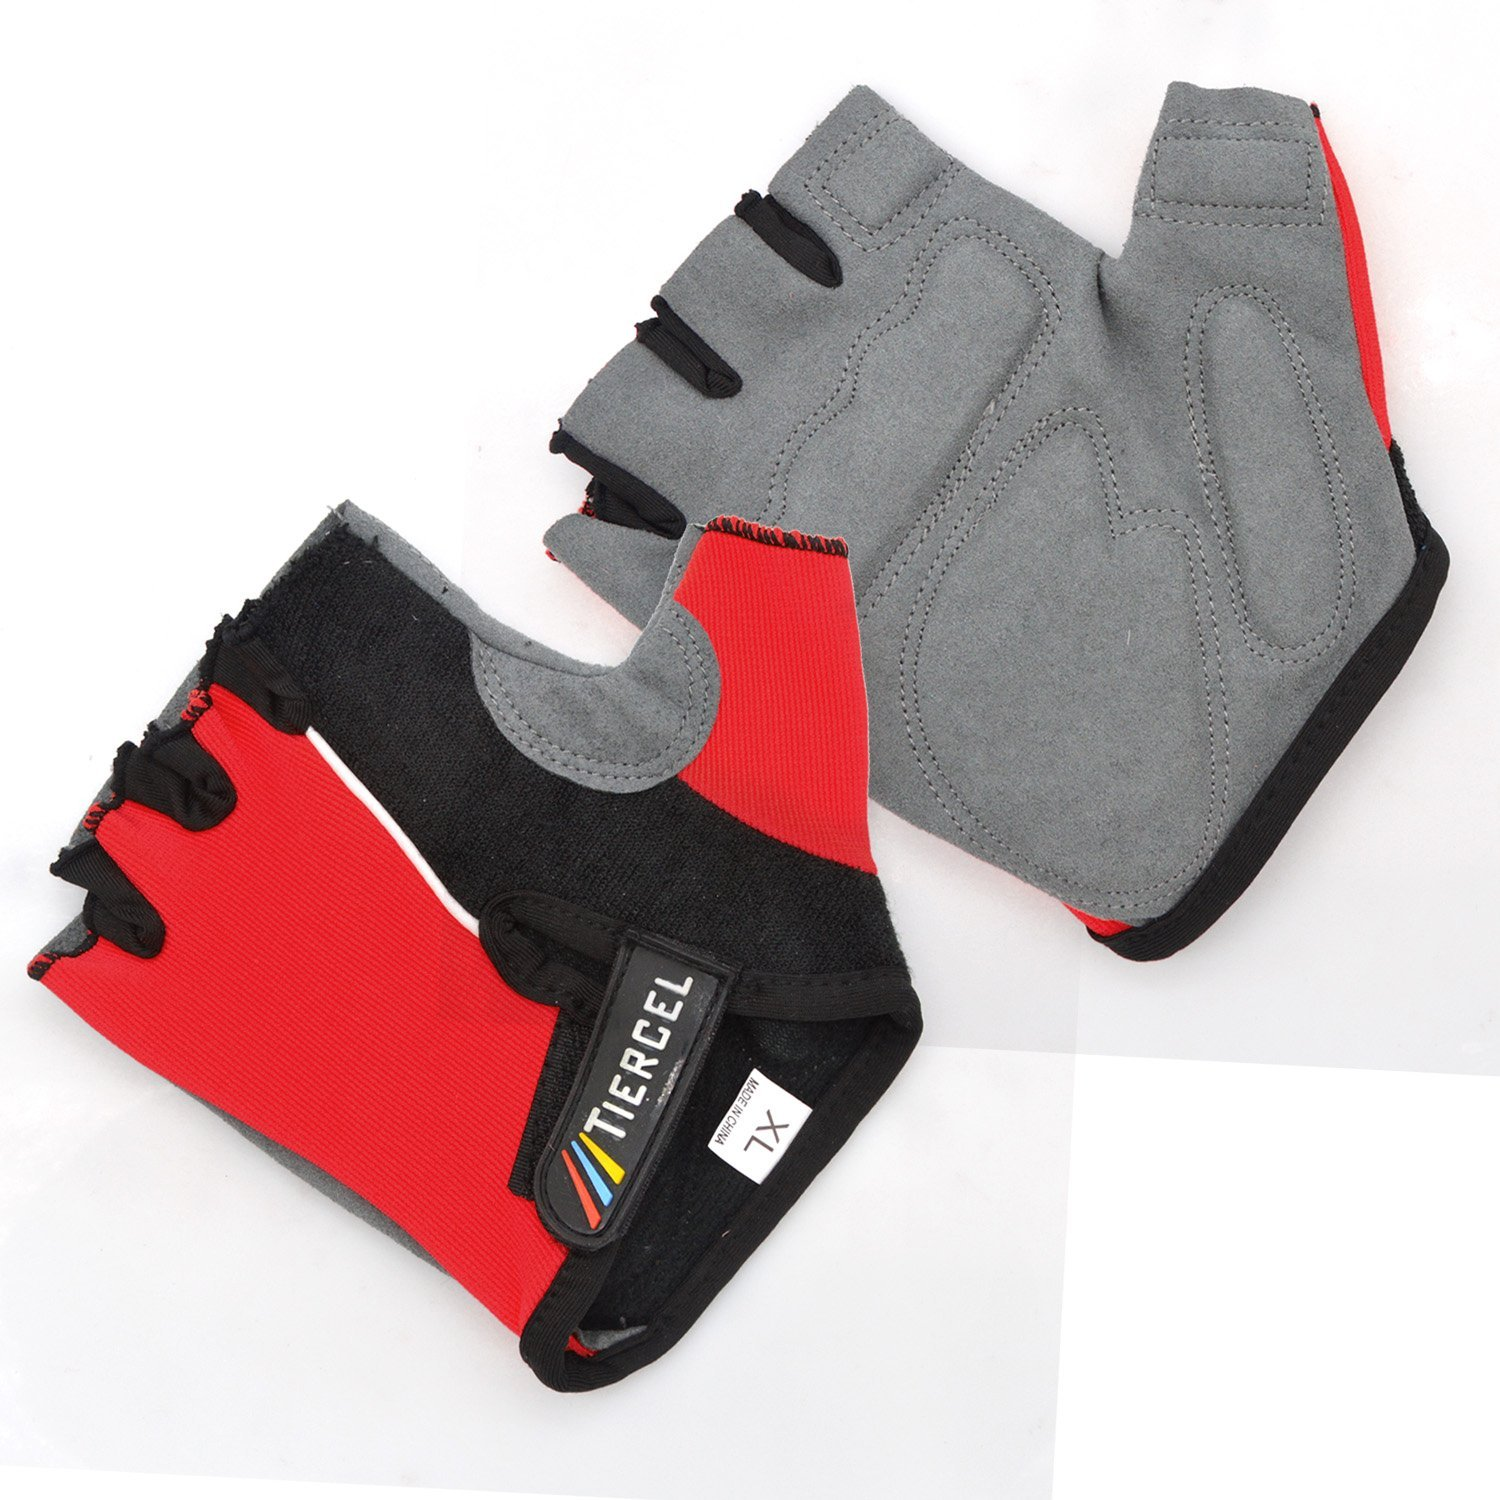 Cycling Gloves/Exercise Gloves/Riding Gloves,Freehawk®Summer Sport Half Finger Gloves/Anti-slip Anti-shock Cycling Motorcycle Gloves/Race Gloves/Outdoor Sport Bicycle Racing Mitten for Men/Women